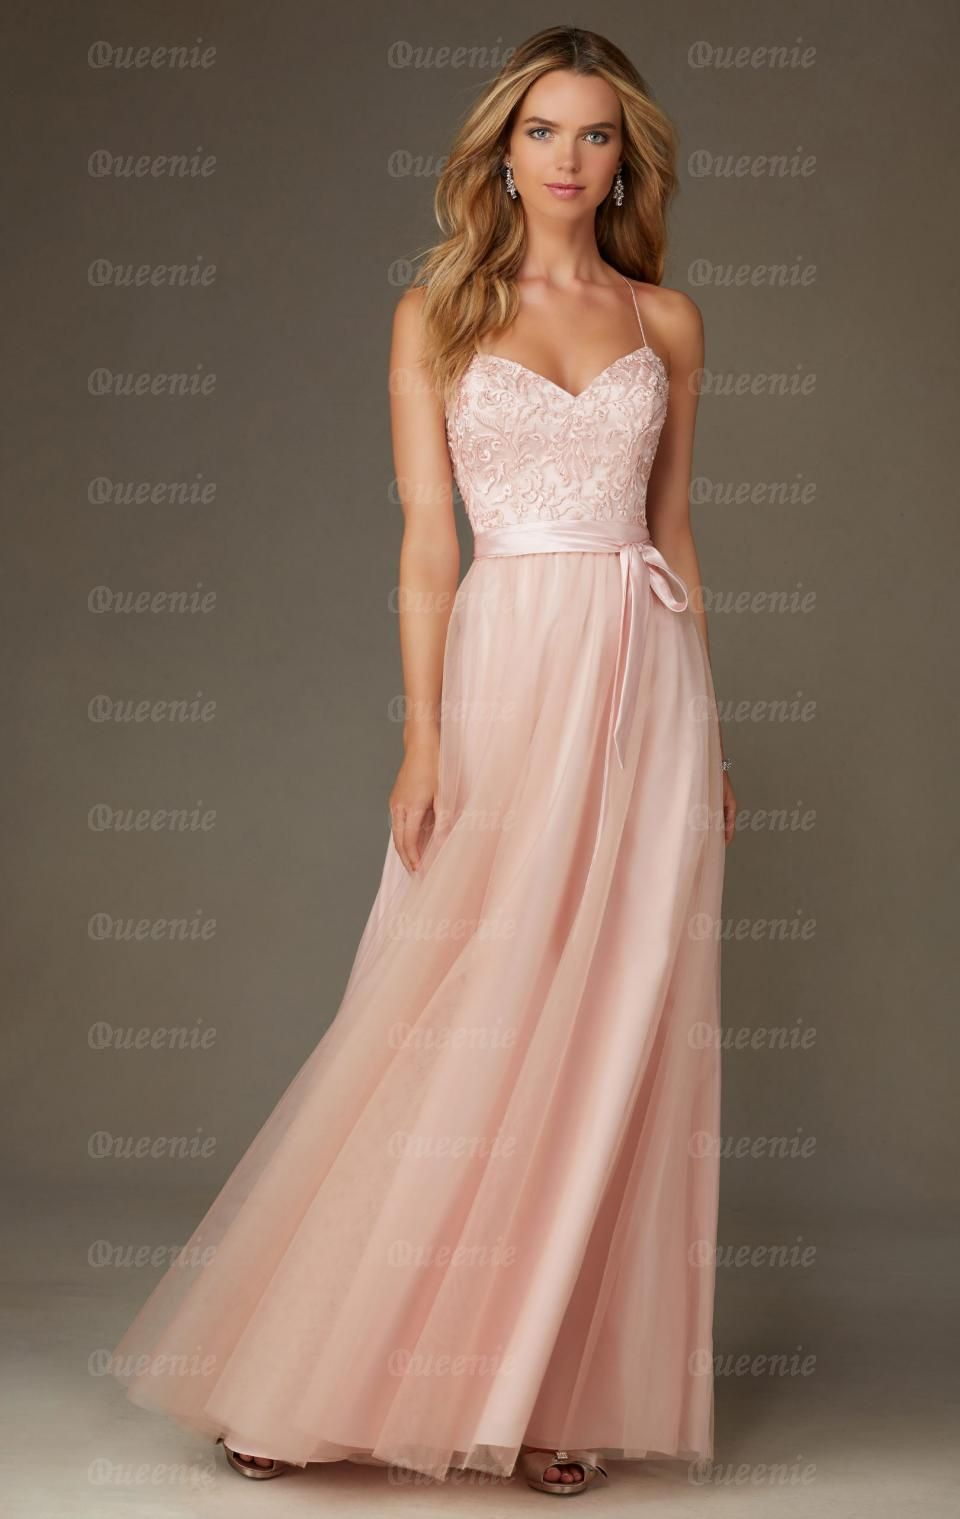 bridesmaid dresses pale pink - Google Search | polyvore saves by ...